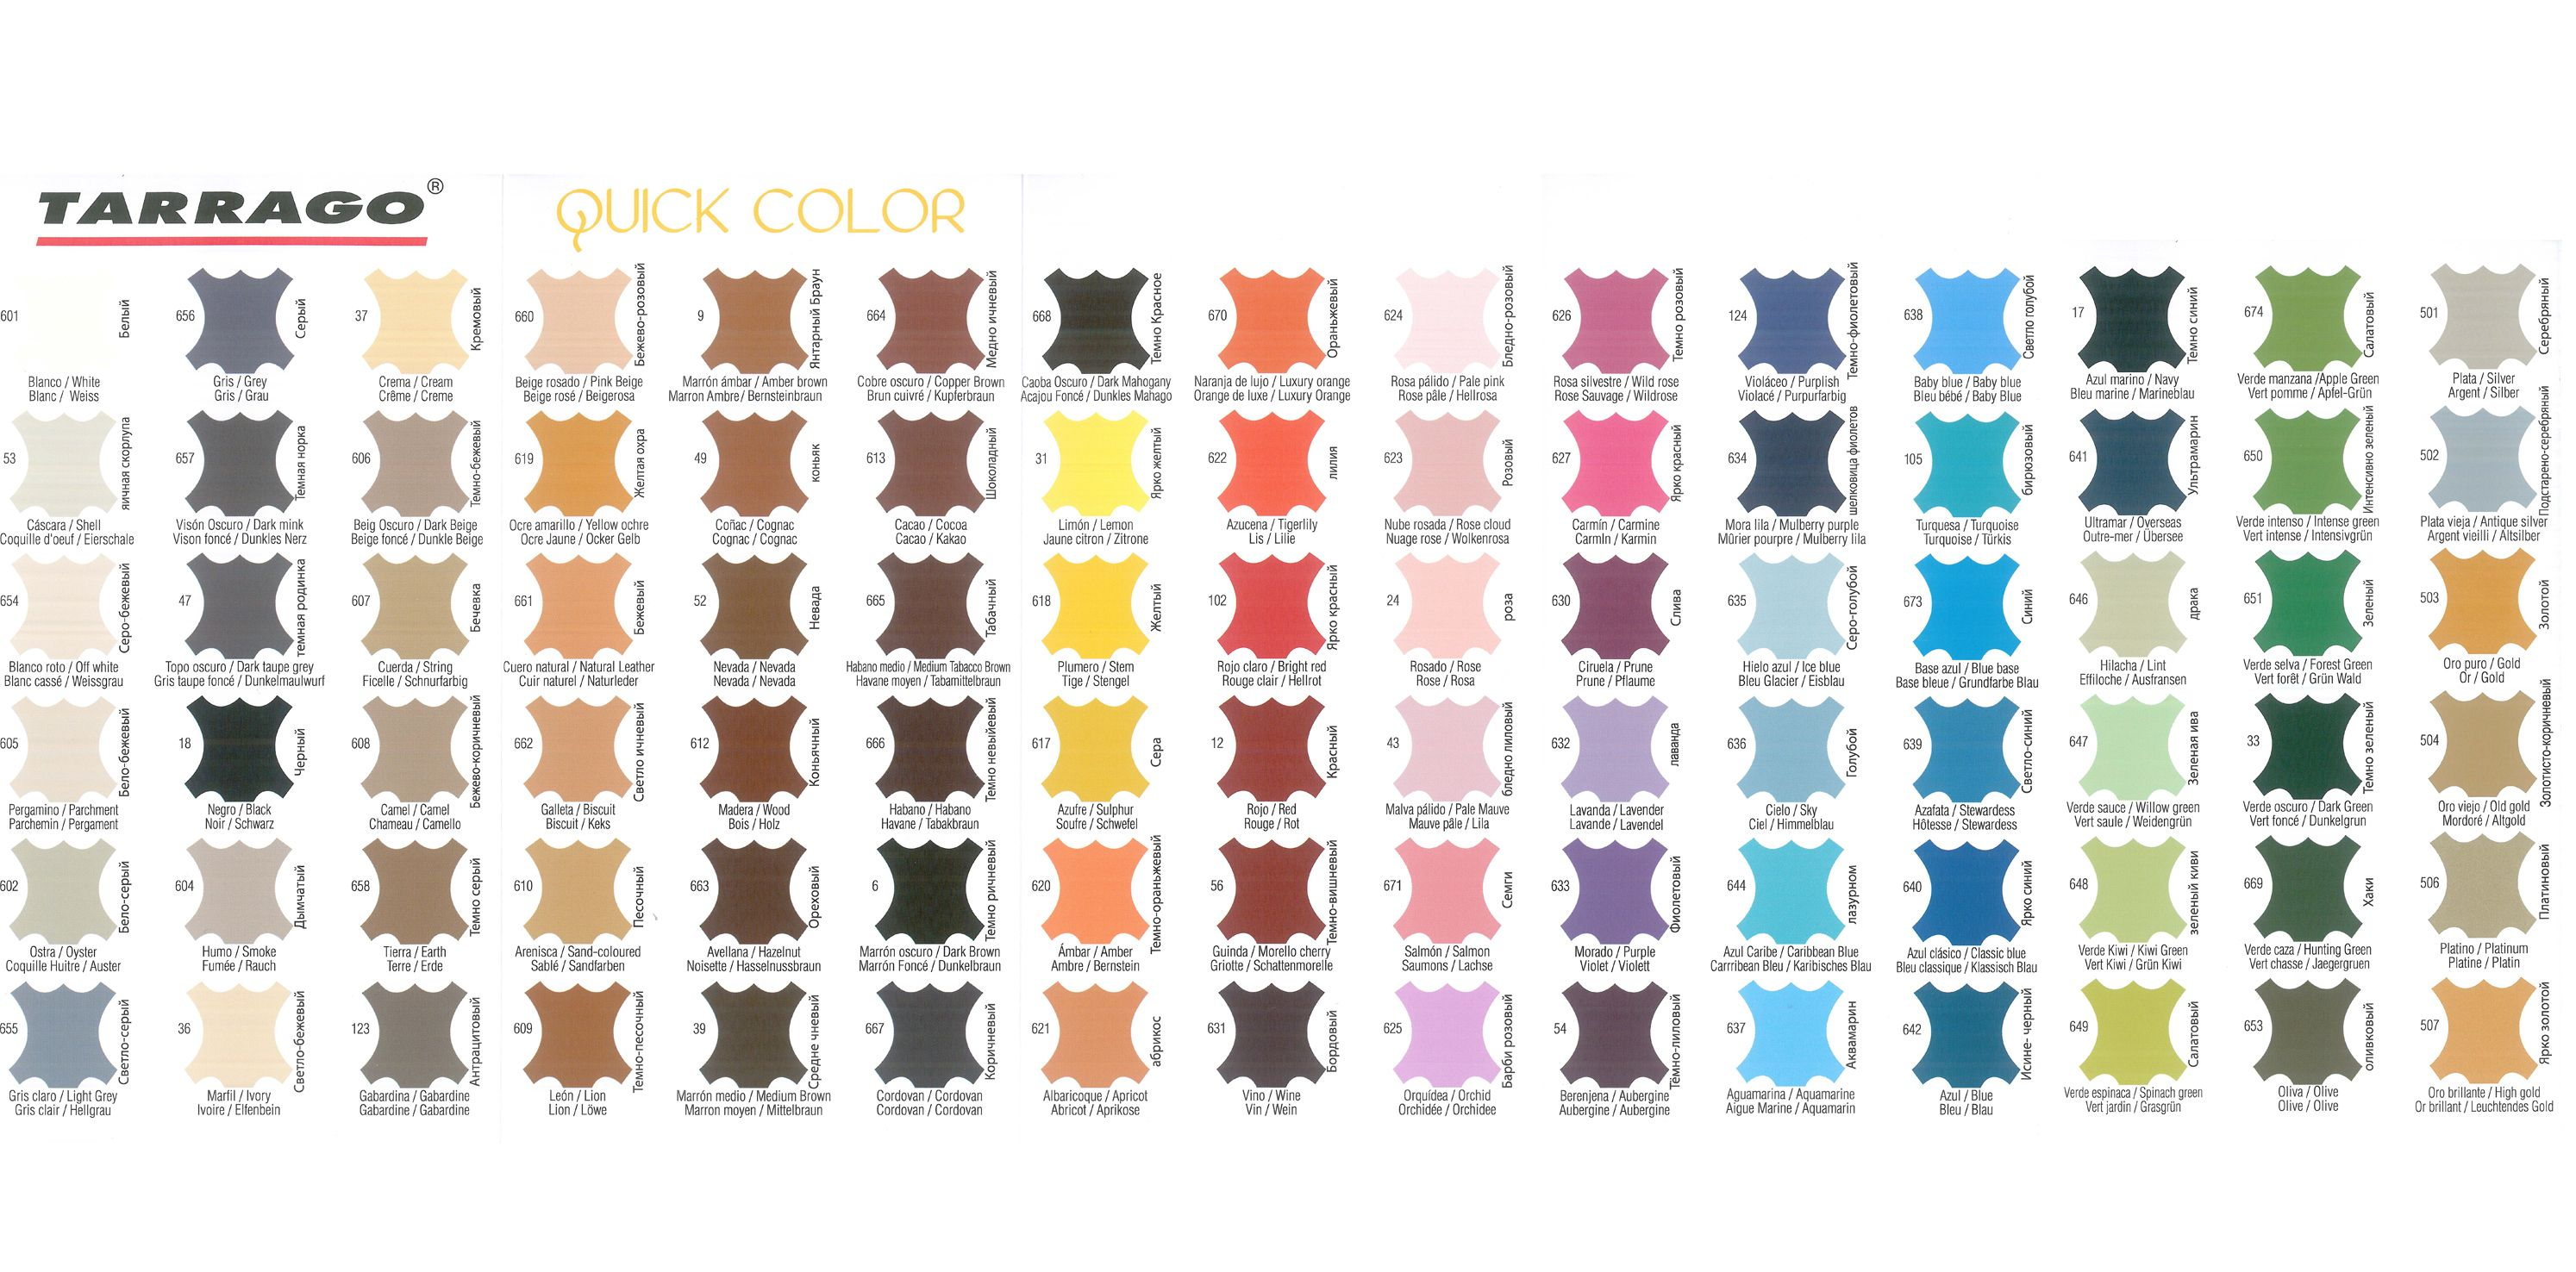 Quick color tarrago color chart 90 different colors available quick color tarrago color chart 90 different colors available including pearly and metallized nvjuhfo Images